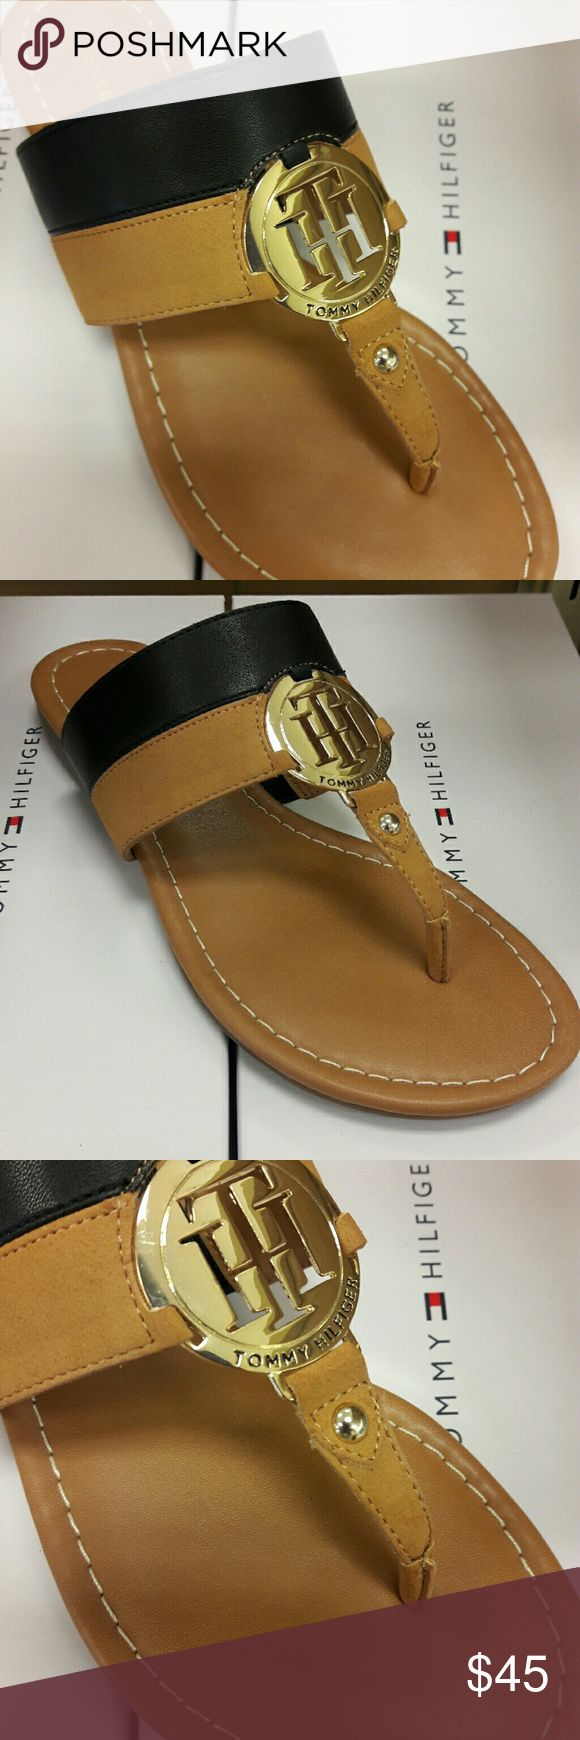 Tommy Hilfiger sianne  sandals Style: T-StrapClosure  Type: Buckle Material: SyntheticSole  Material: Manmade Toe Style: Split Toe Tommy Hilfiger Shoes Sandals